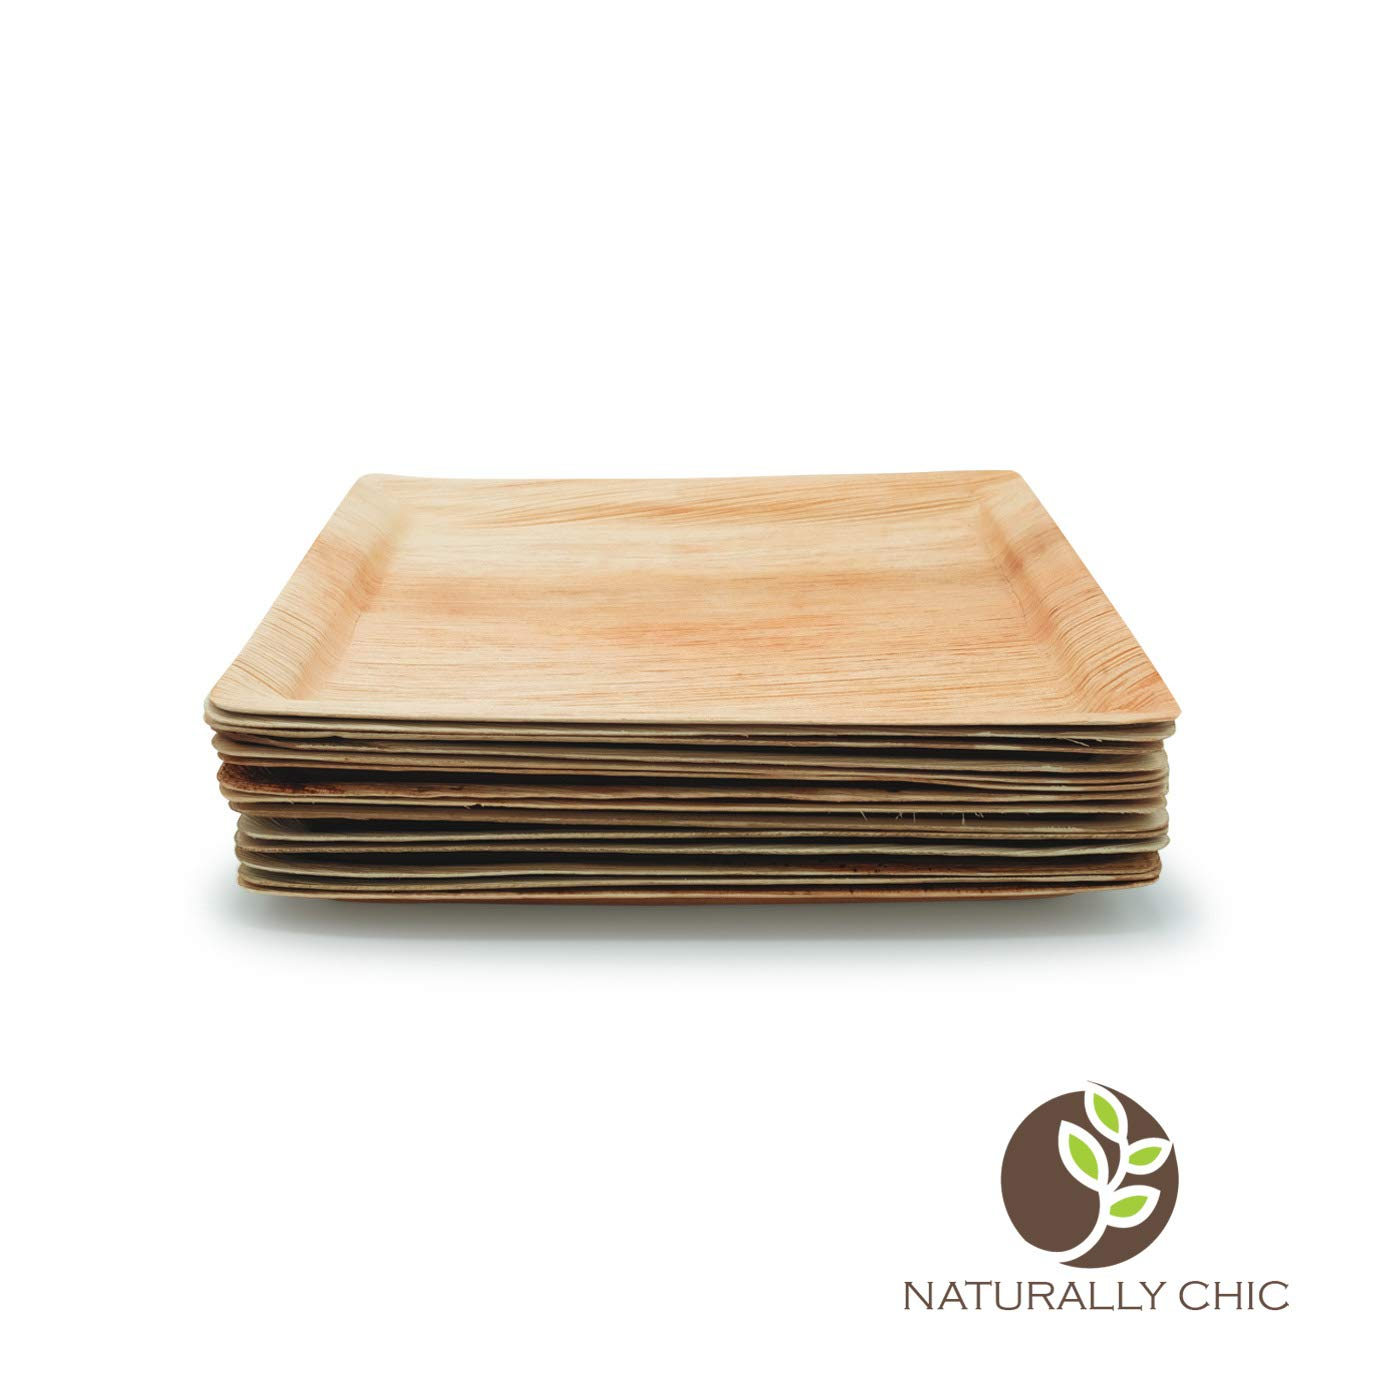 Naturally Chic Palm Leaf Compostable Serving Trays - 12 x 10 Inch Biodegradable Disposable Eco Friendly Trays for Weddings, Parties, BBQs, Events (10 Pack)